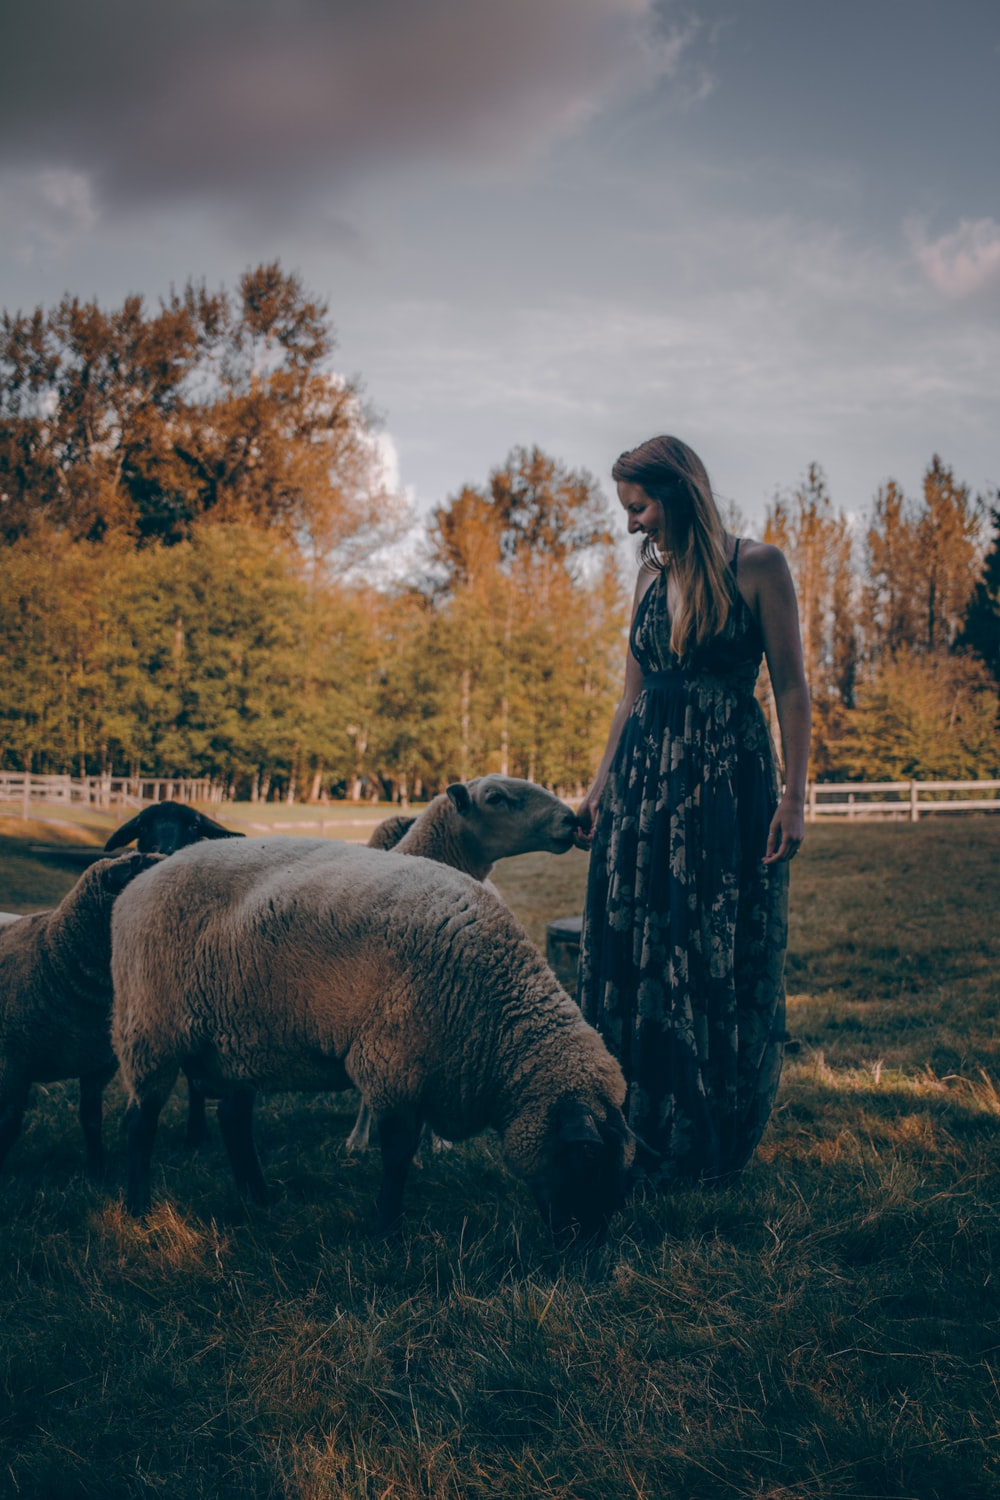 woman by sheeps